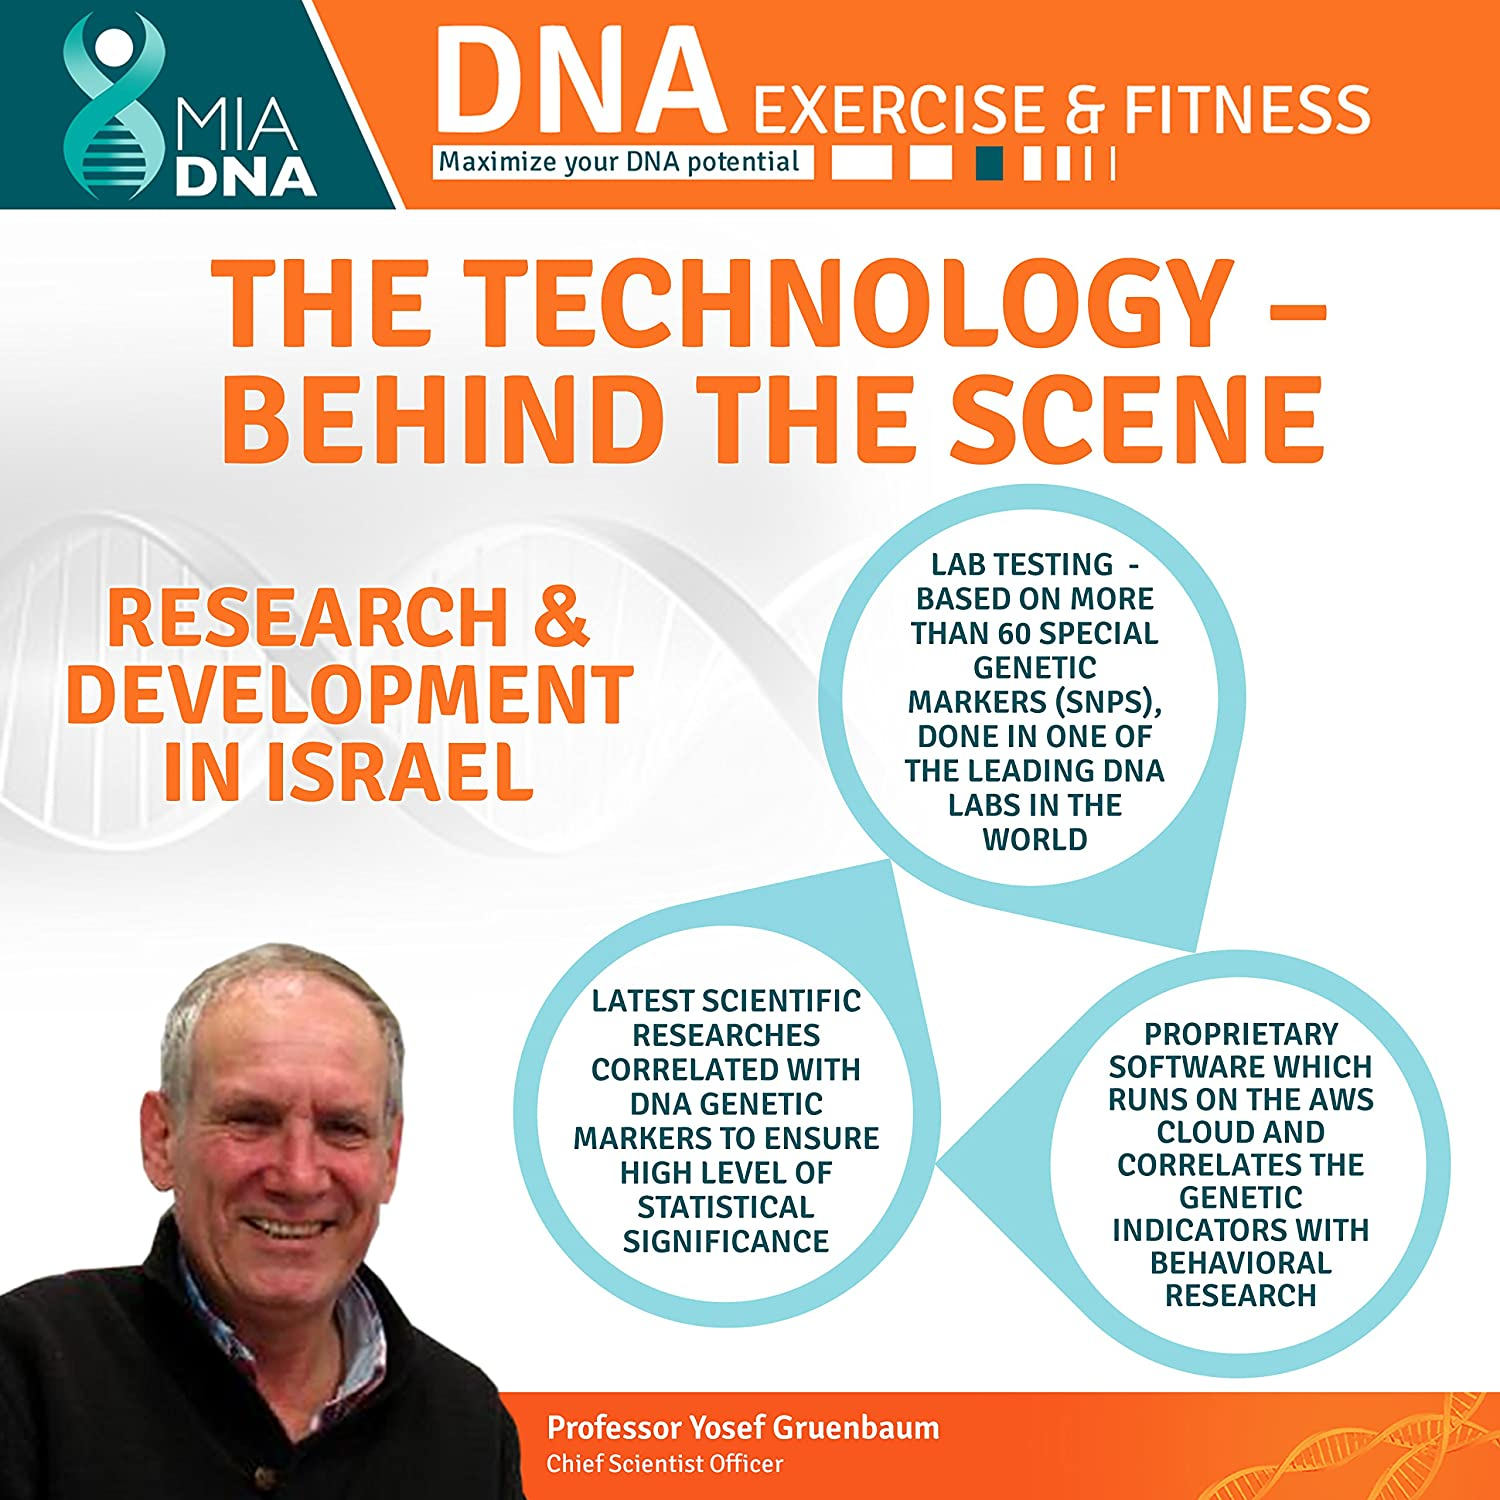 2 in 1 - Diet & Nutrition + Exercise & Fitness Home DNA Test Kit I Leverage  Genetic testing to